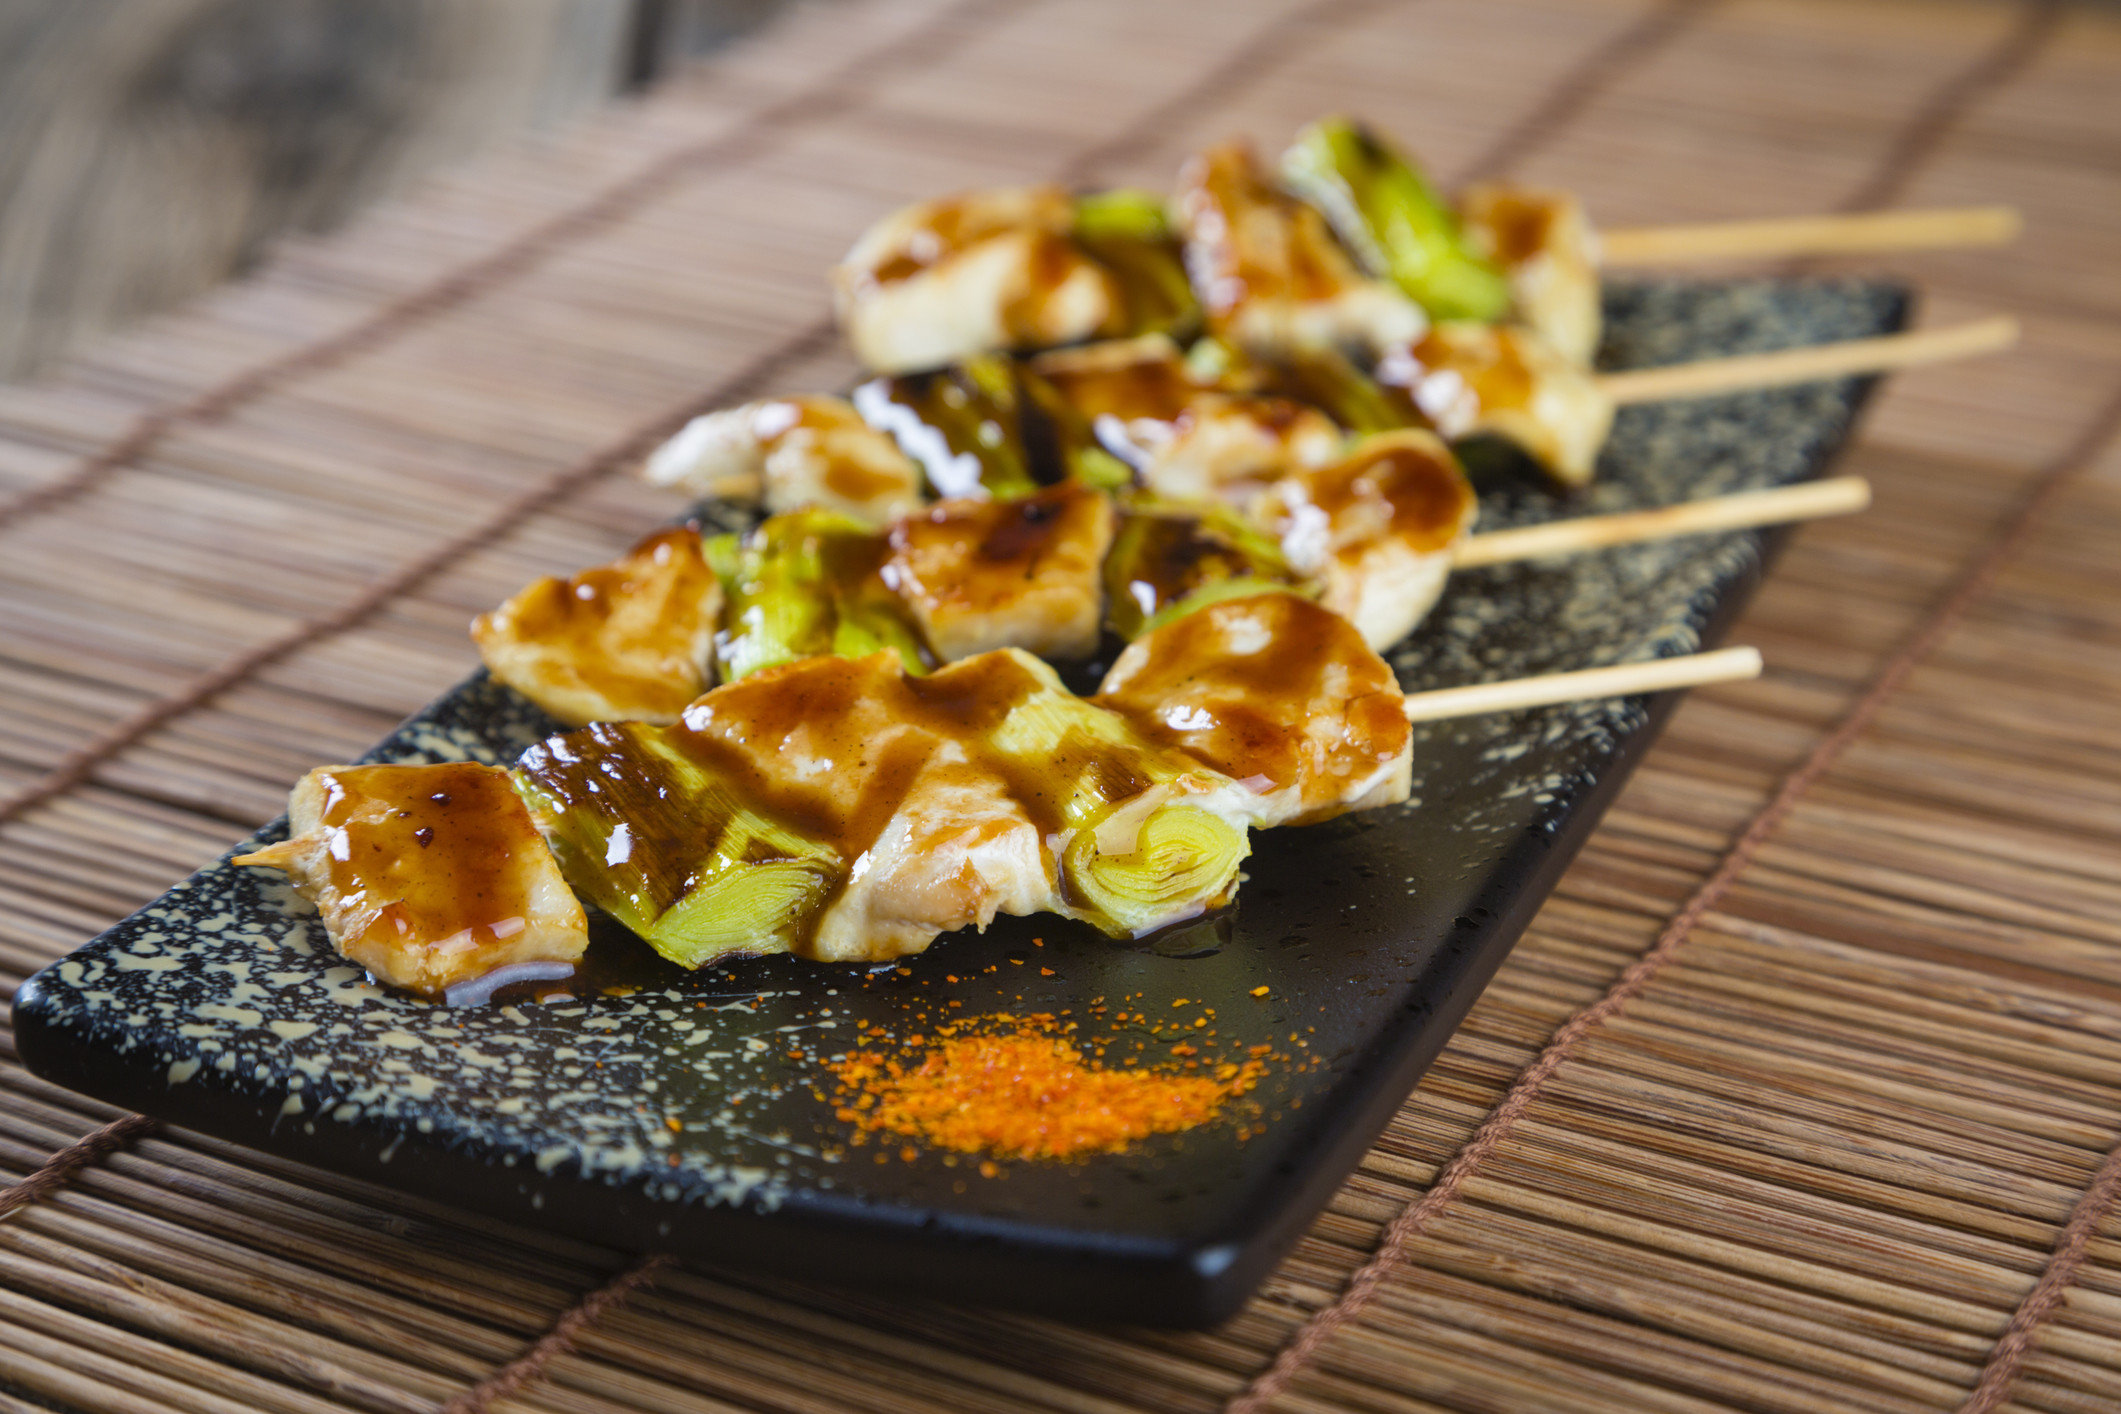 Food + Drink Trip Ideas food floor dish indoor wooden board slice cuisine meal piece produce asian food breakfast vegetable sushi square sliced toppings